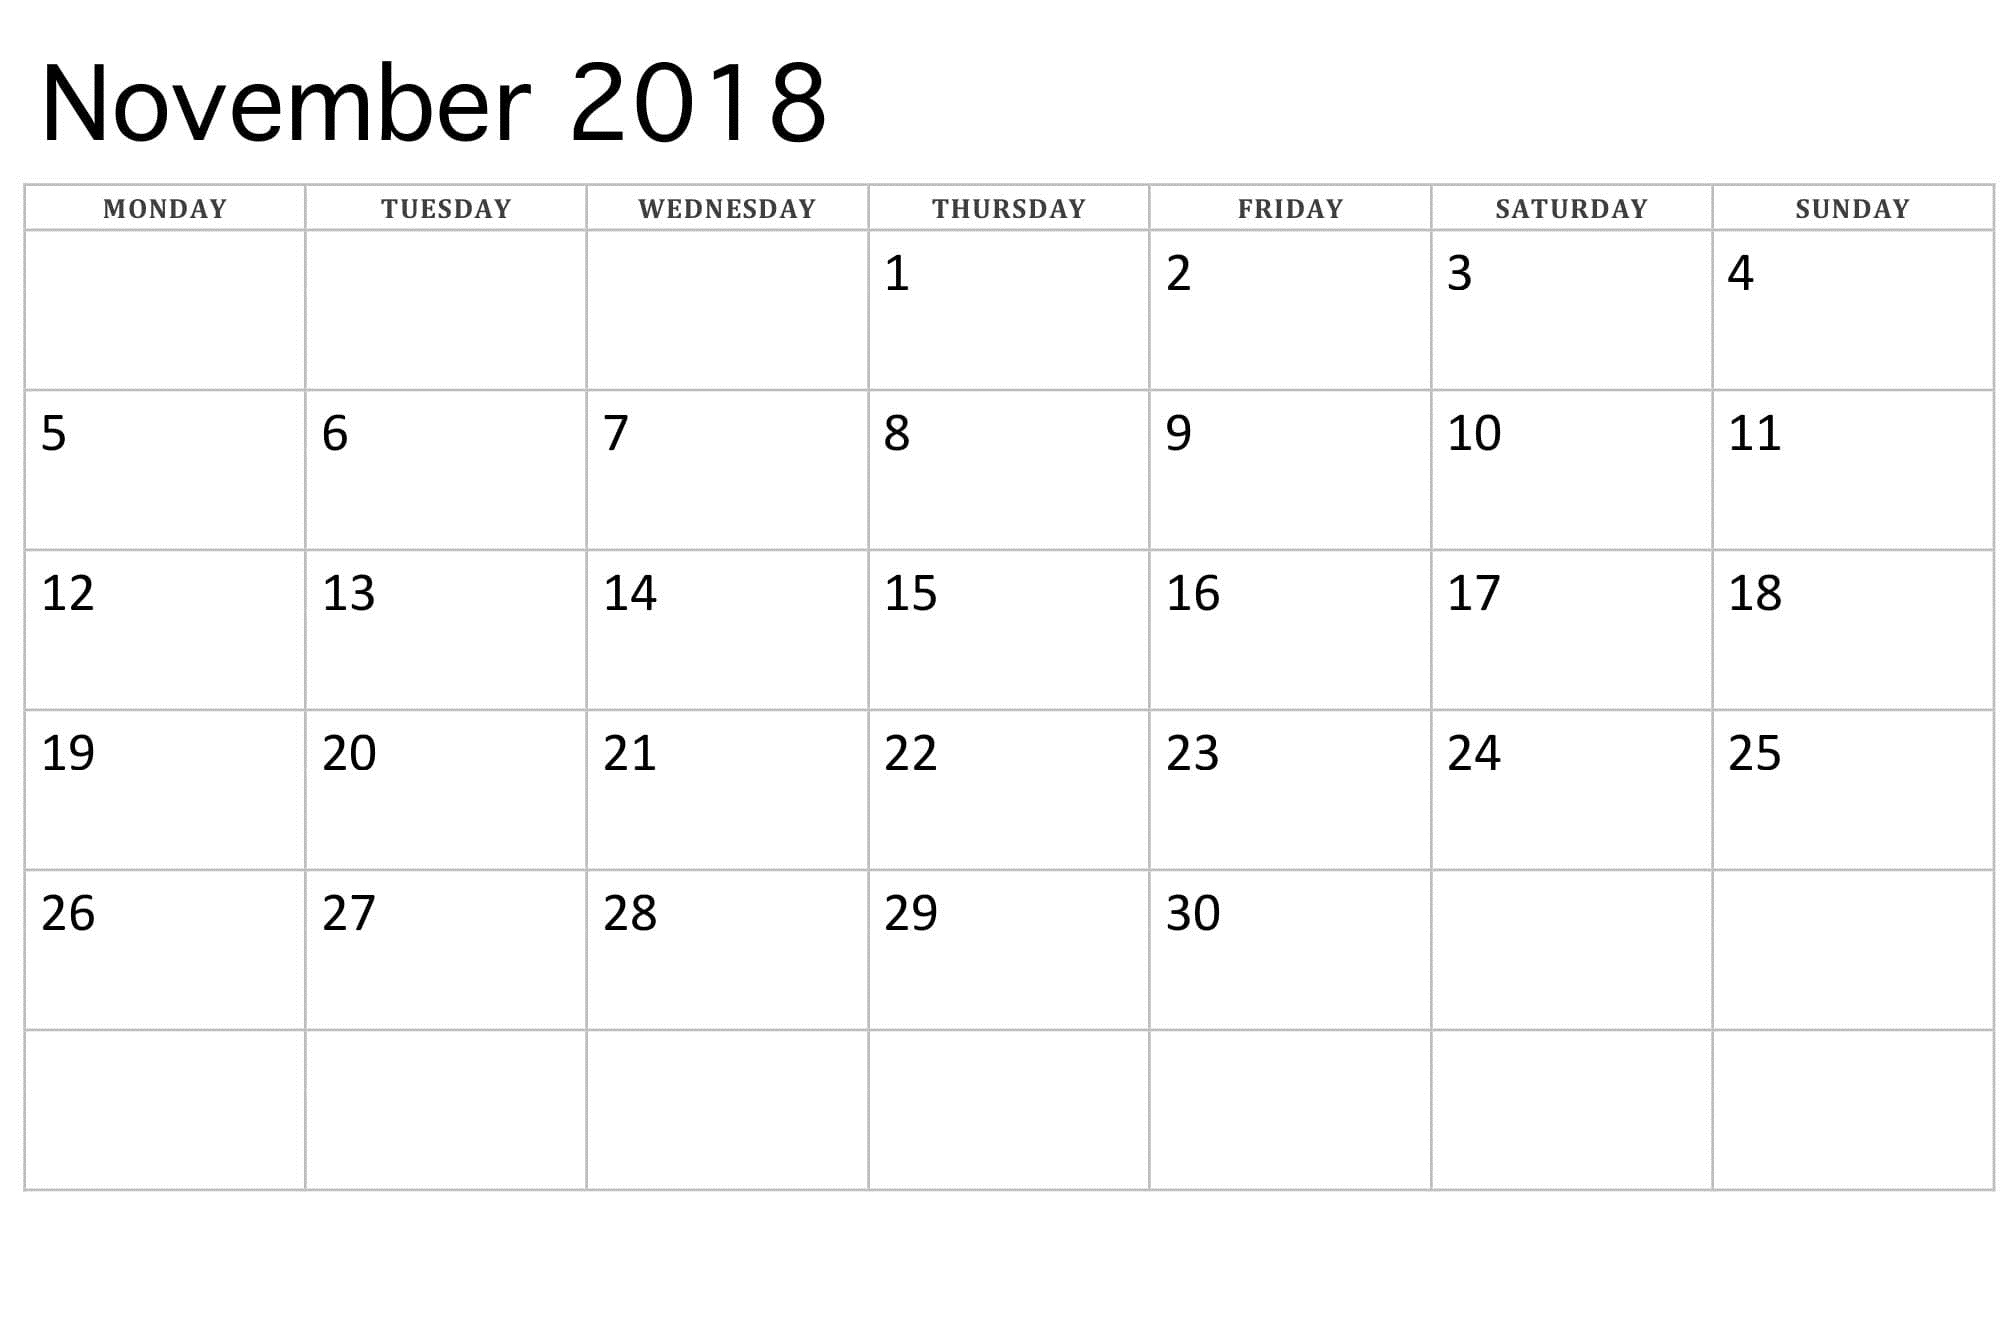 printable november 2018 calendar for daily weekly monthly::November 2018 Calendar